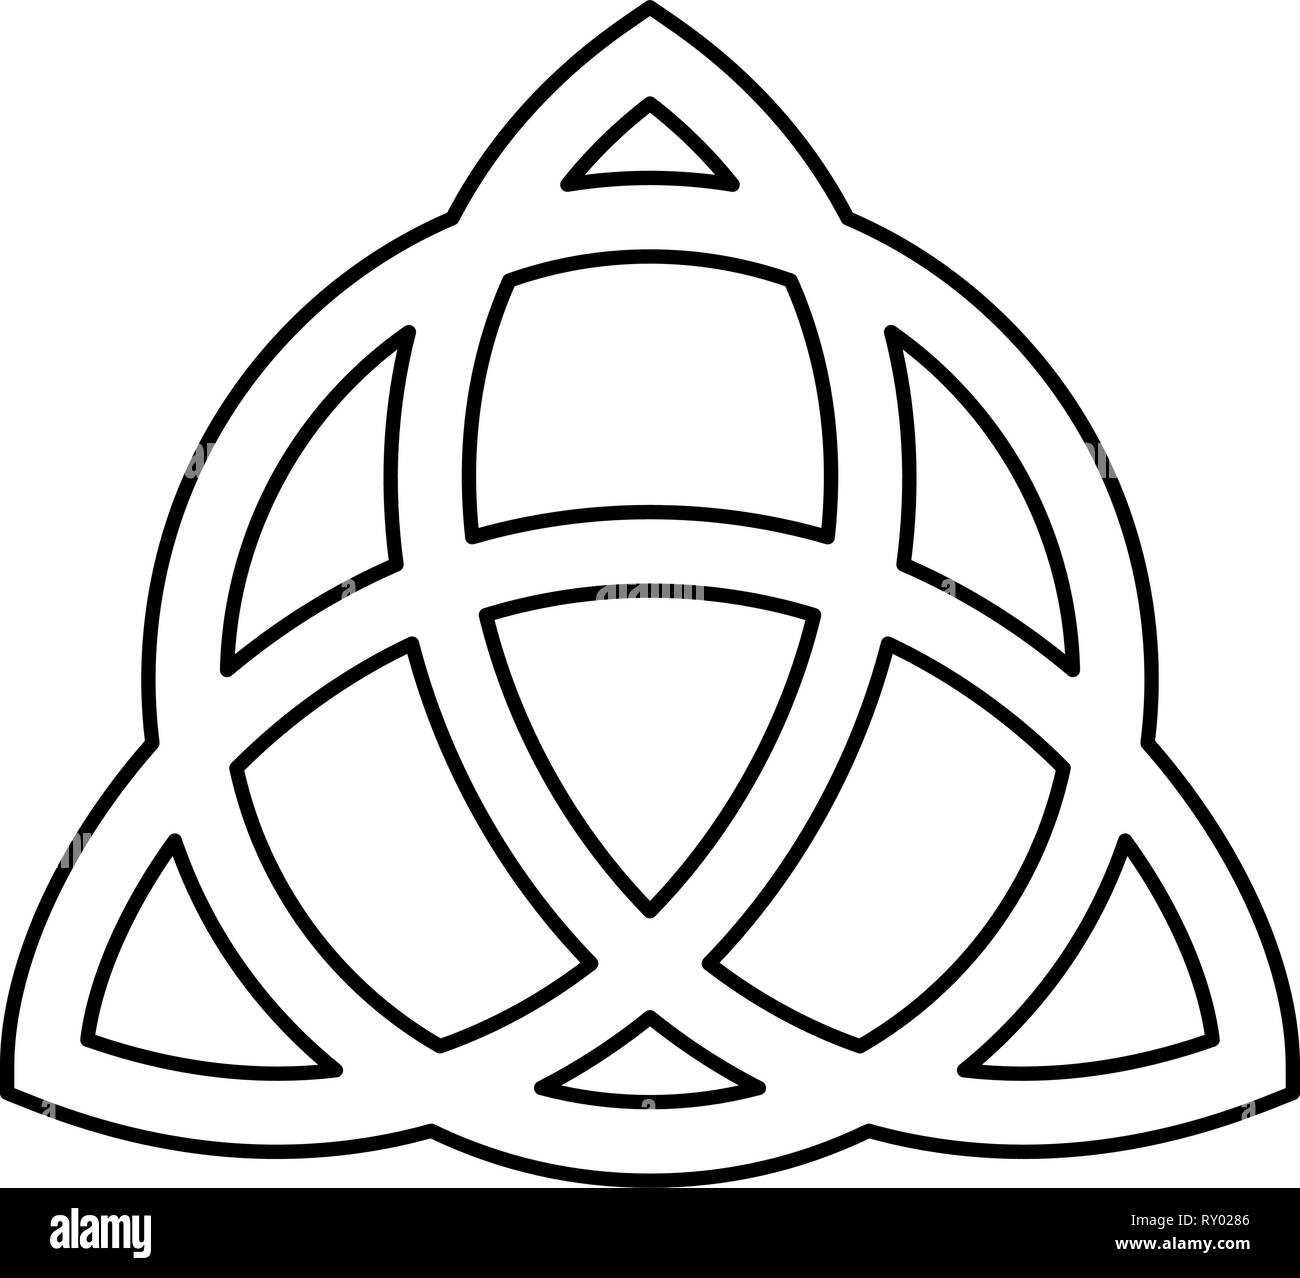 Trikvetr knot with circle Power of three viking symbol tribal for tattoo Trinity knot icon black color outline vector illustration flat style image - Stock Vector